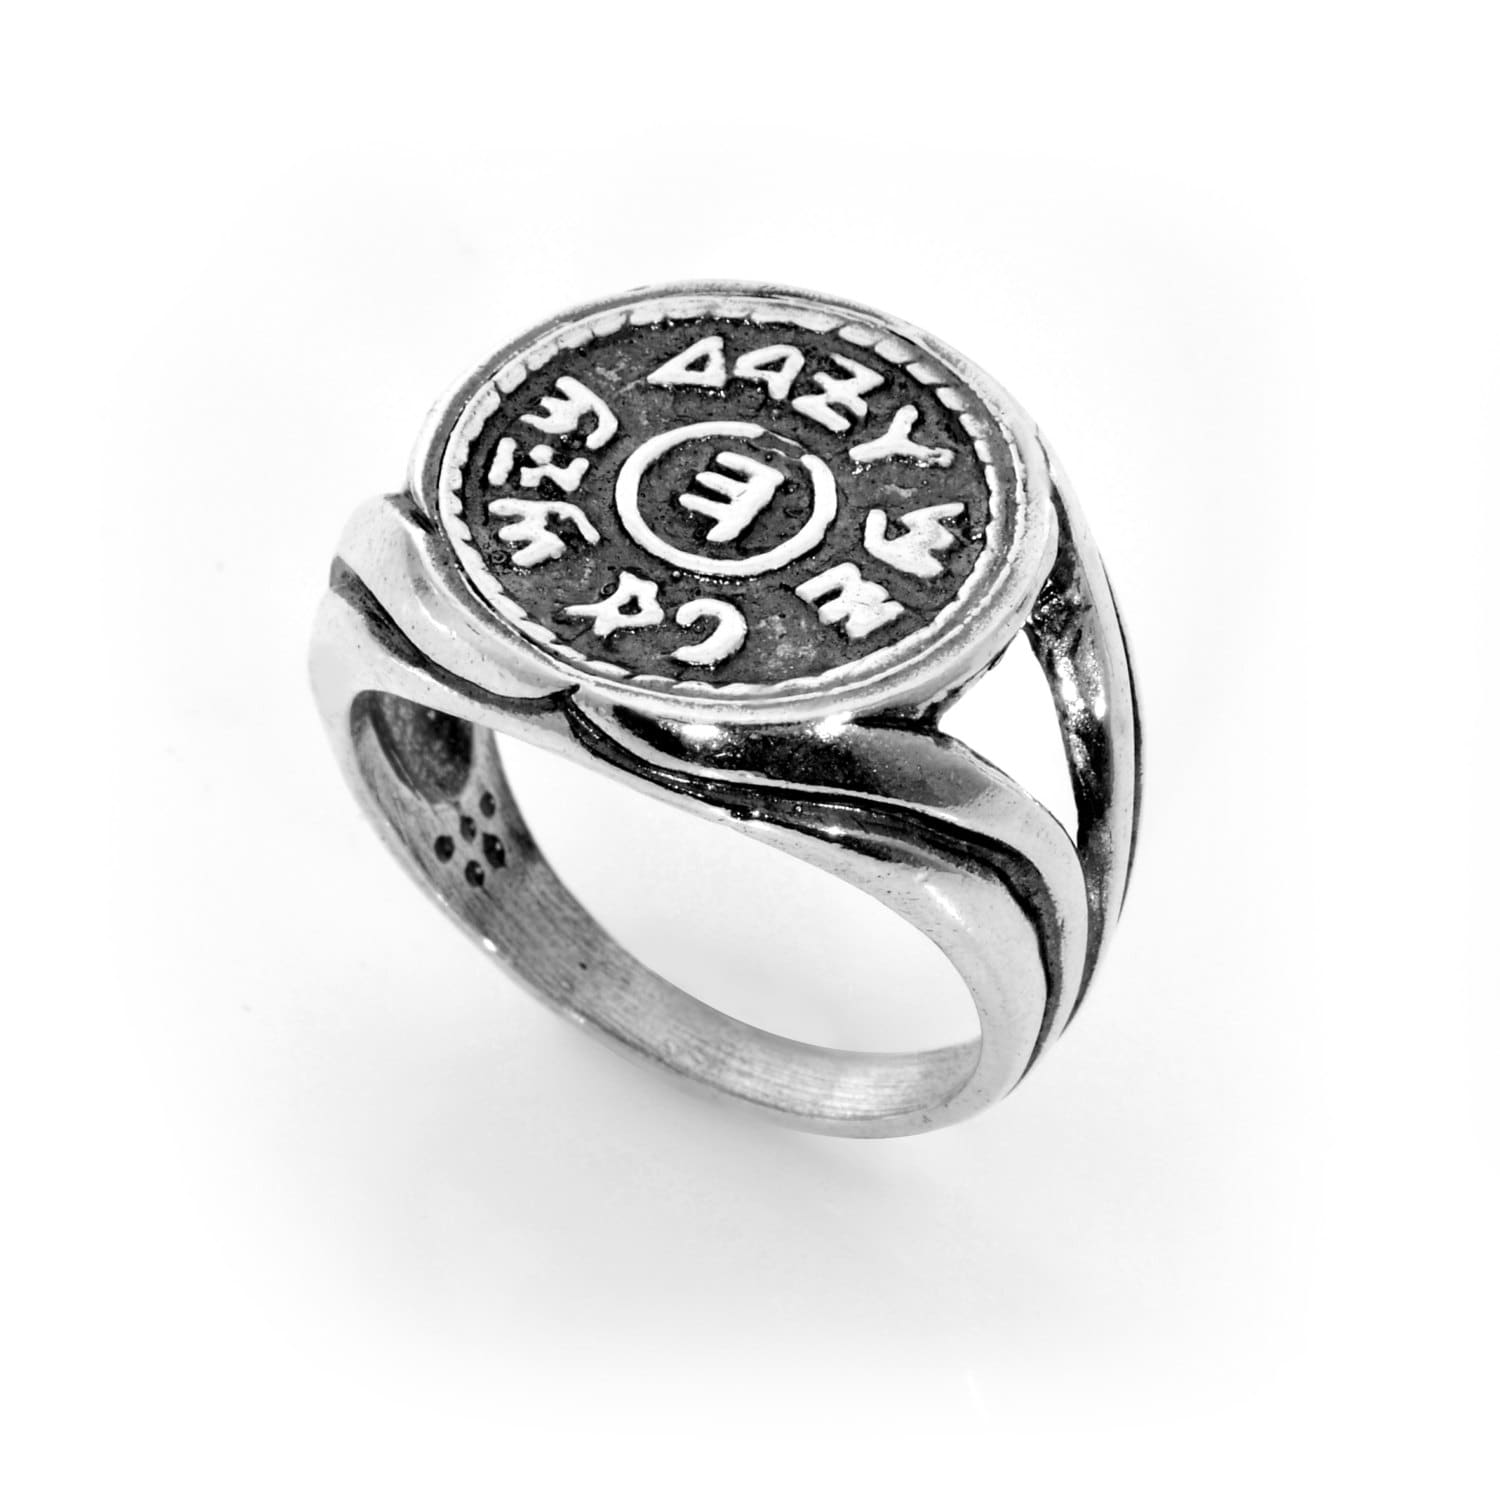 prosperity and success king solomon 925 sterling silver